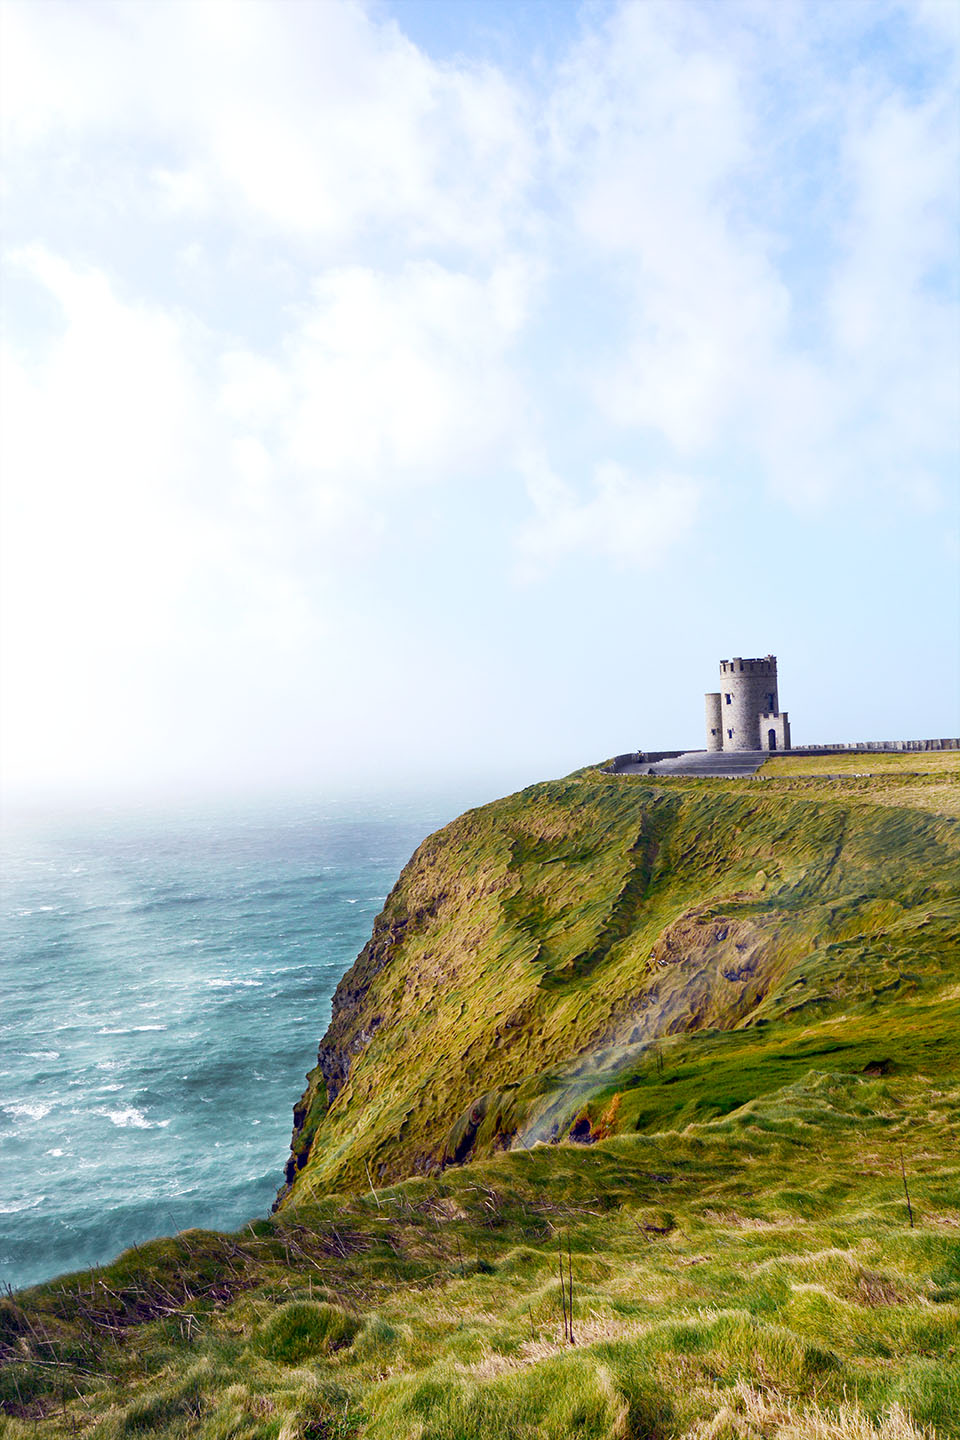 Cliffs of Moher: Castle is a gift shop and lookout point. Closed on windy days and off season.